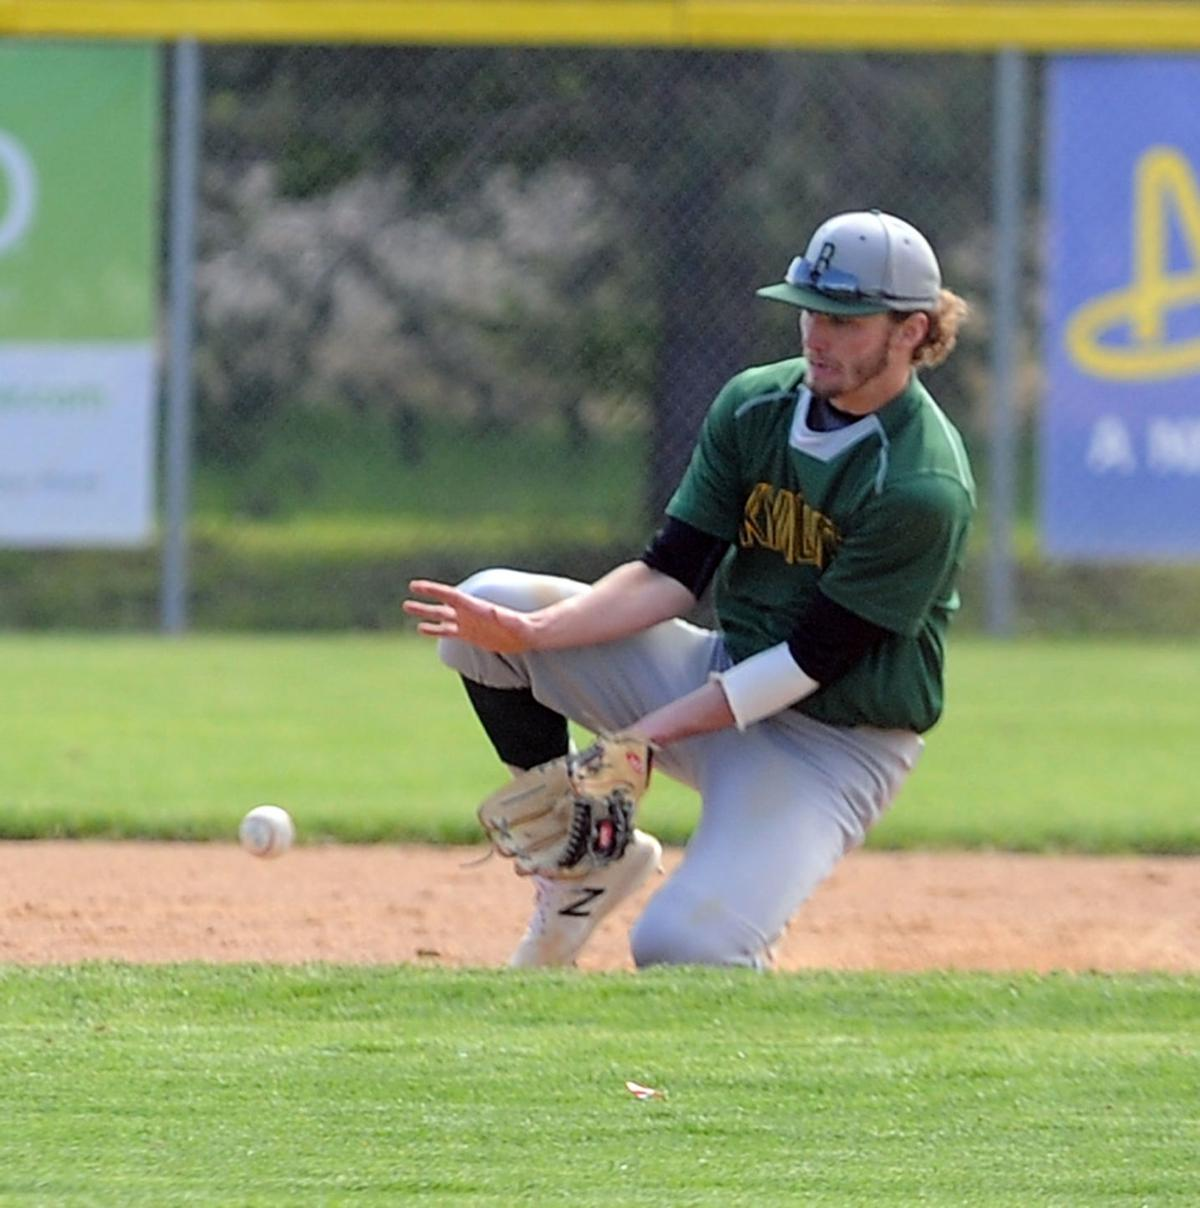 State Baseball Photos: Bergan vs. Gretna, 5.11.19